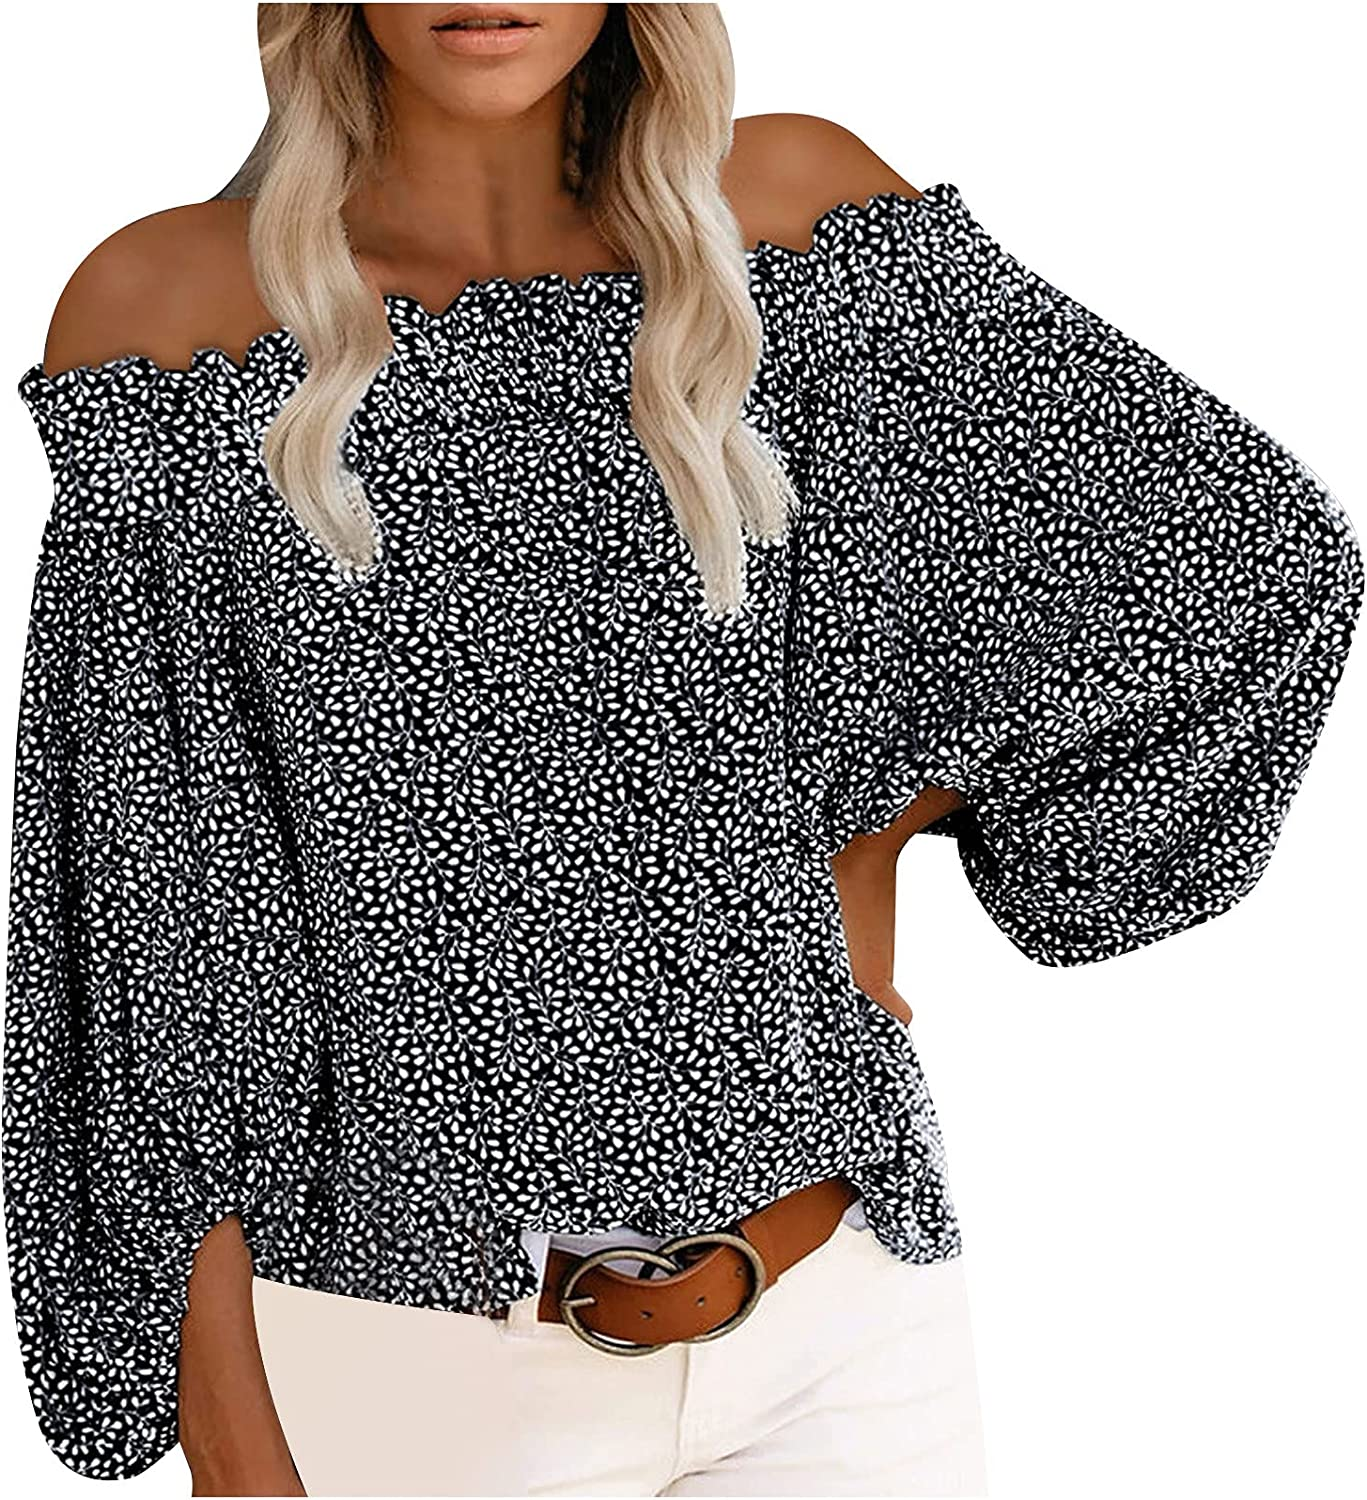 Women's Sexy Tops Off Shoulder Shirts Lantern Sleeve Blouse Stylish Oversized T Shirt Loose Fit Floral Tees